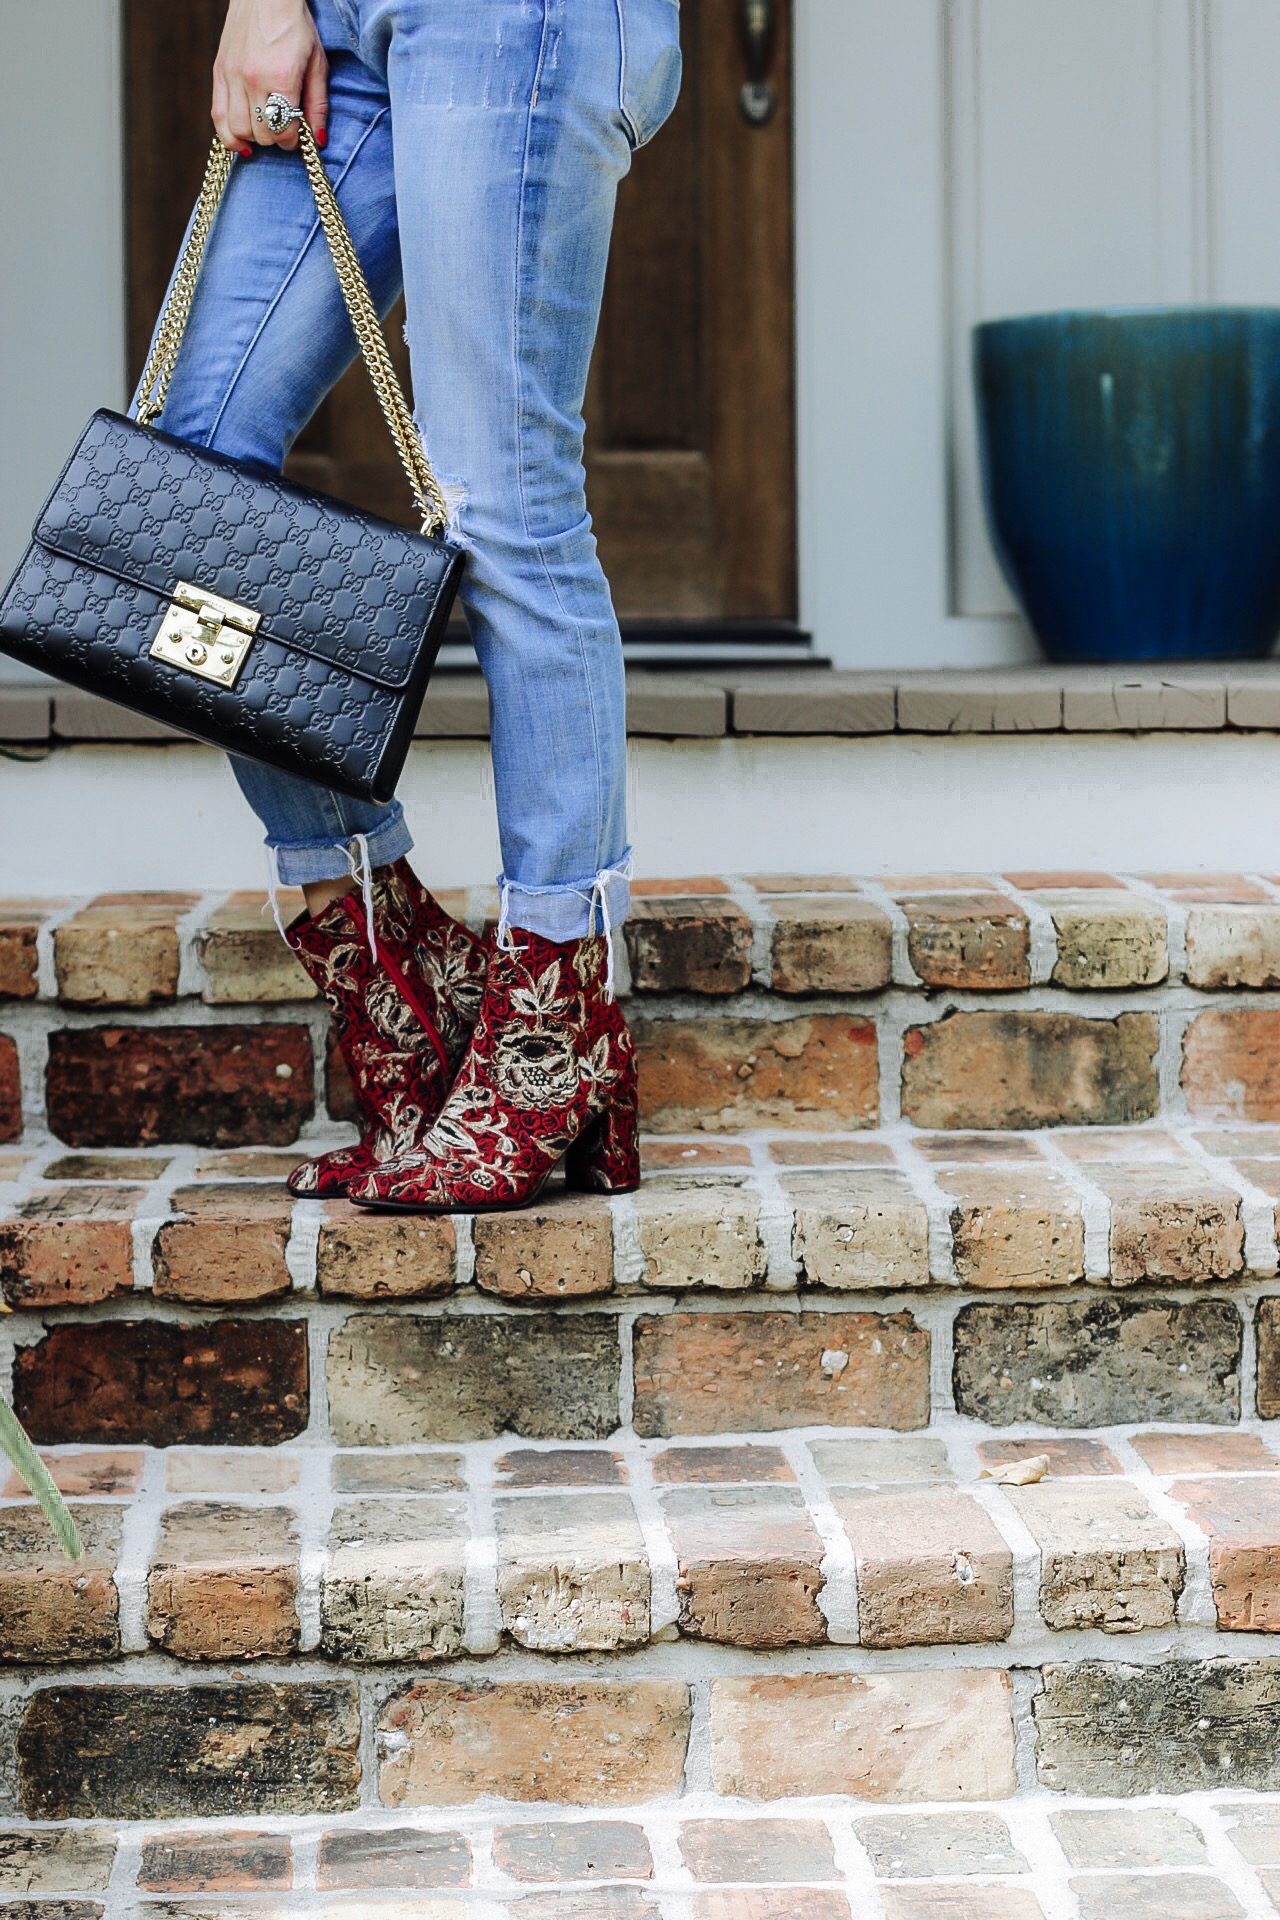 mark and Spencer boots with Gucci handbag